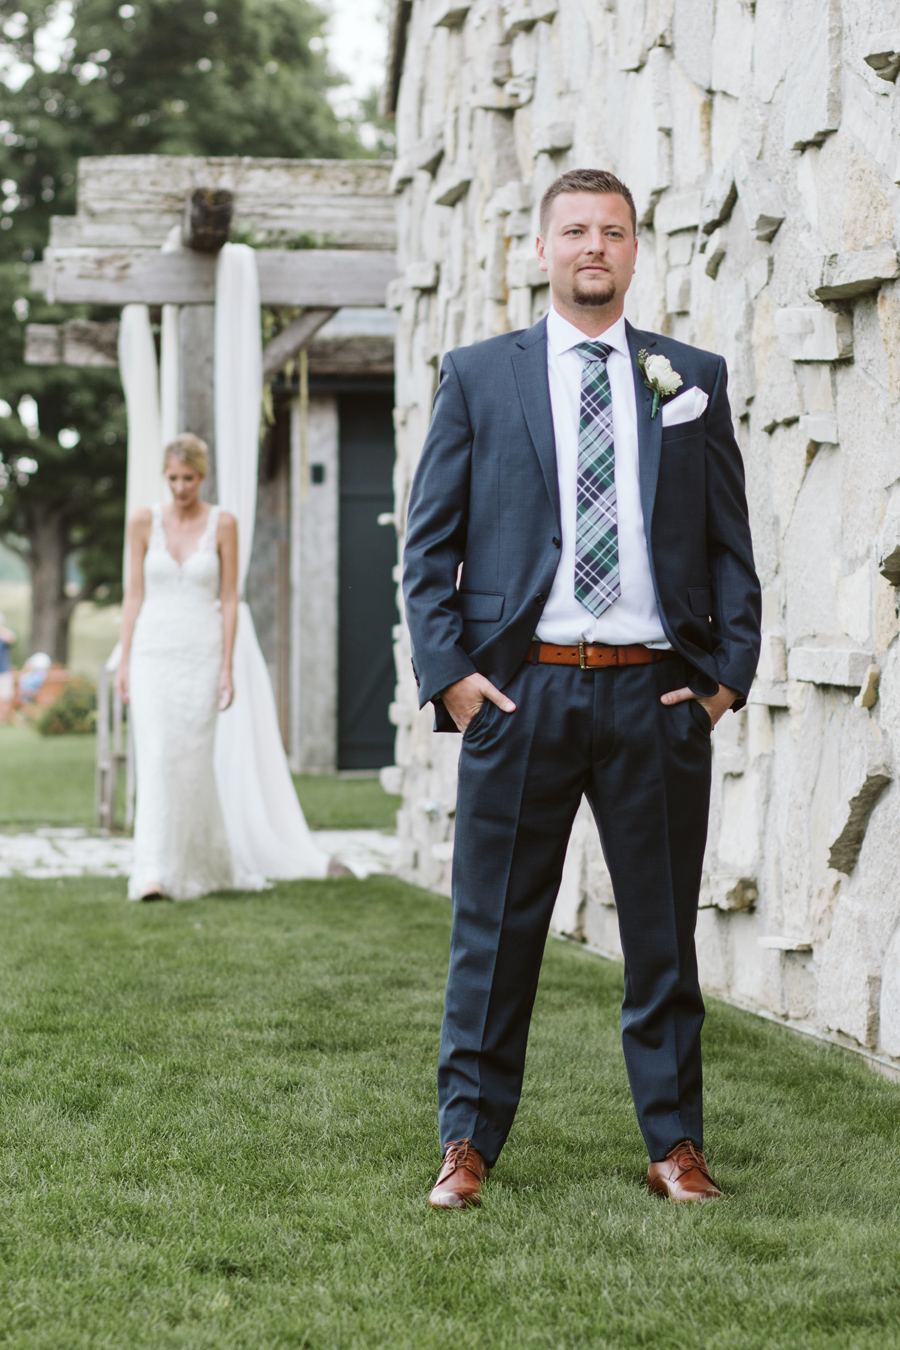 WhistlingStraitsWedding100.jpg